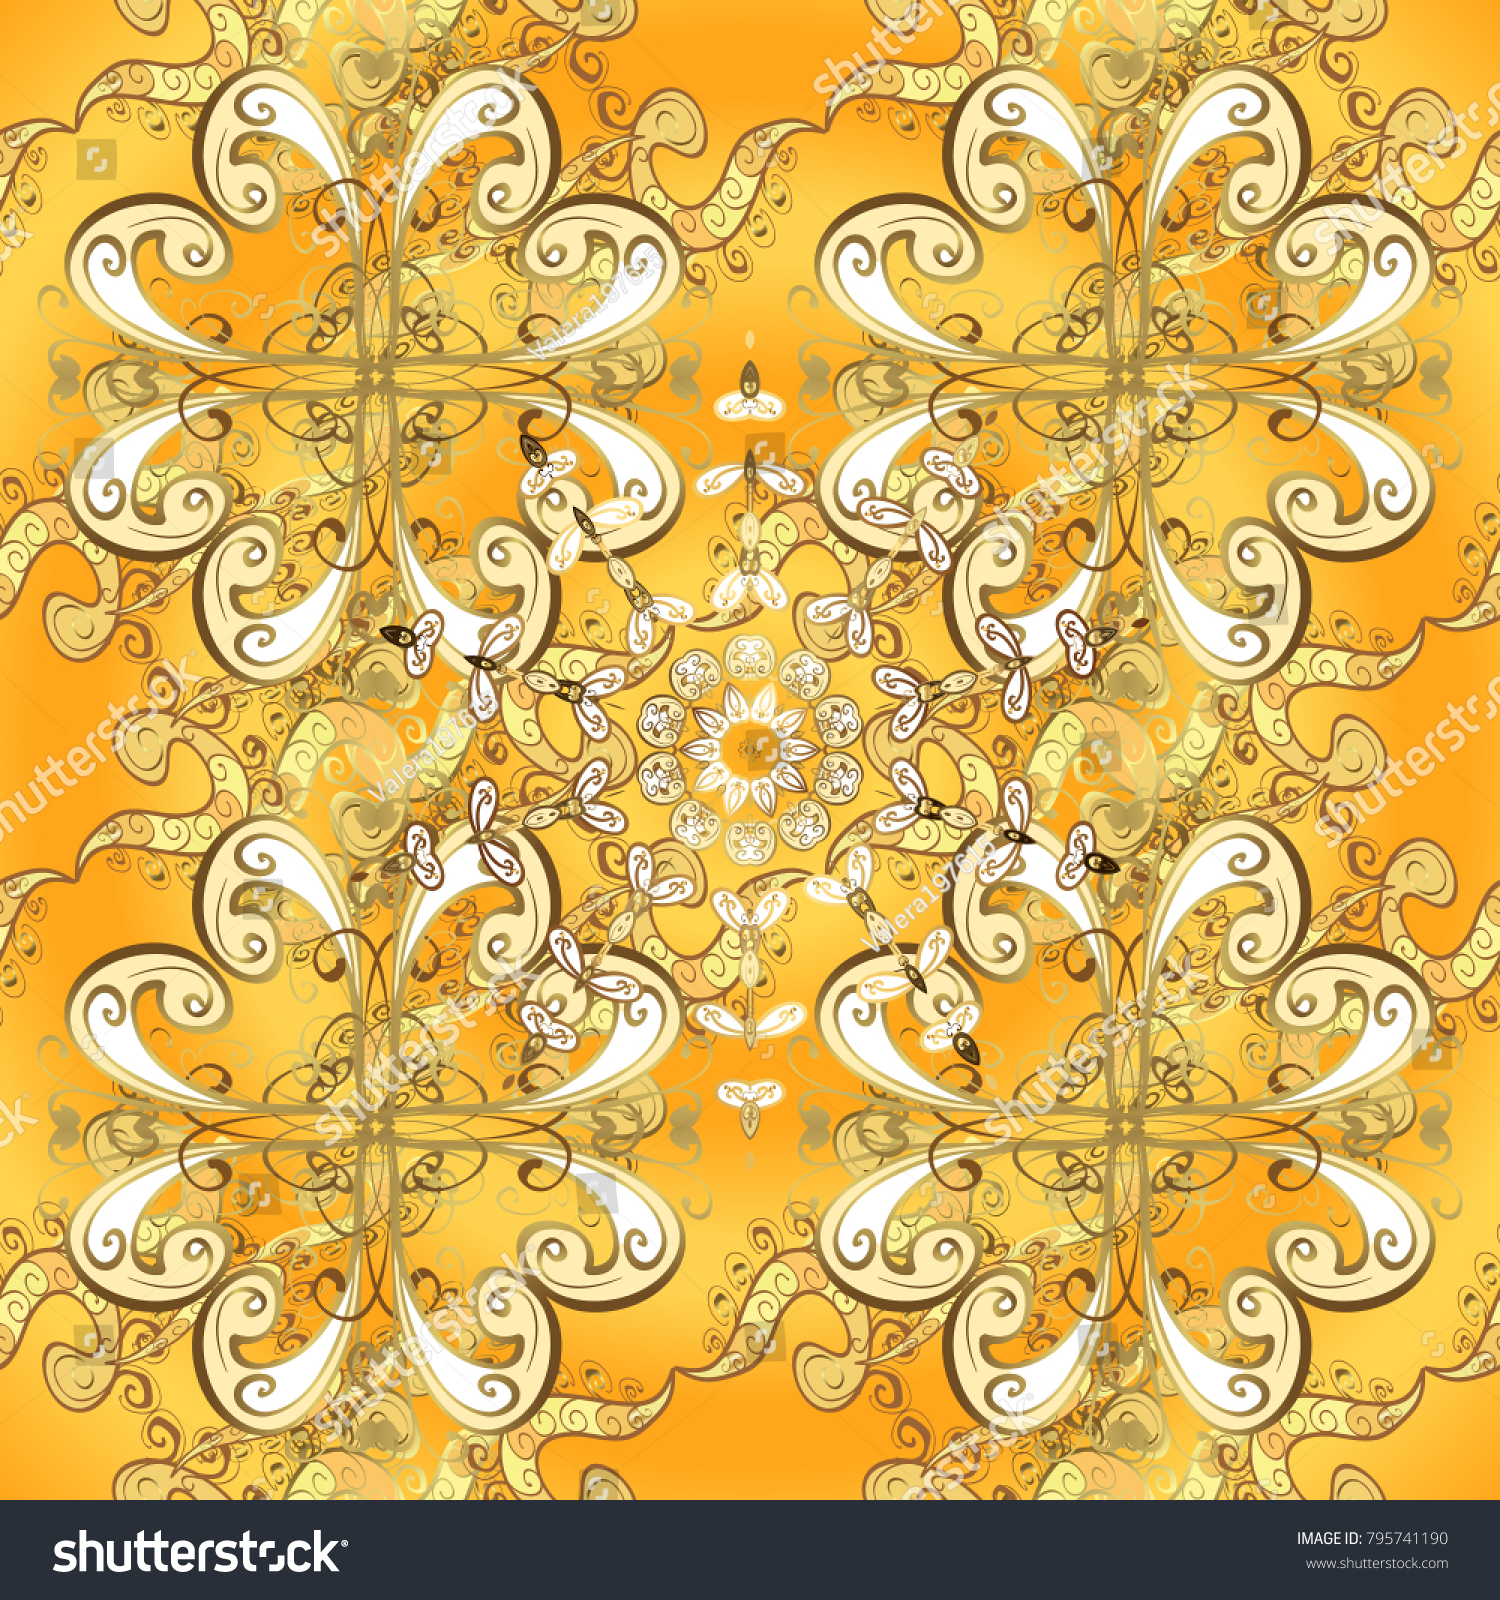 Vector Pattern Background Wallpaper With Gold Antique Floral Medieval Decorative 3d Flowers Leaves And